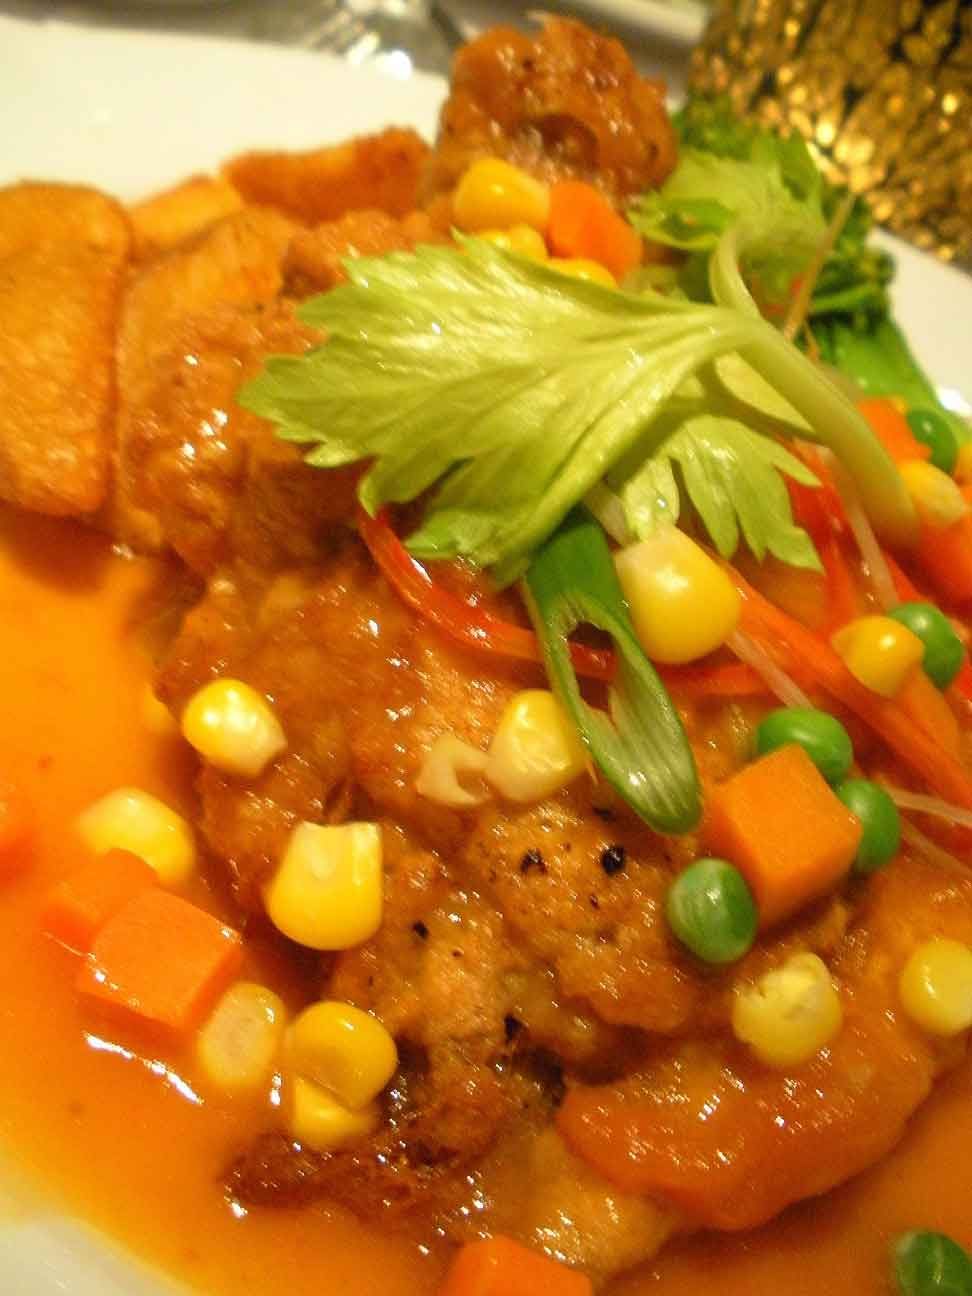 Eclectic's Hainanese Chicken Chop